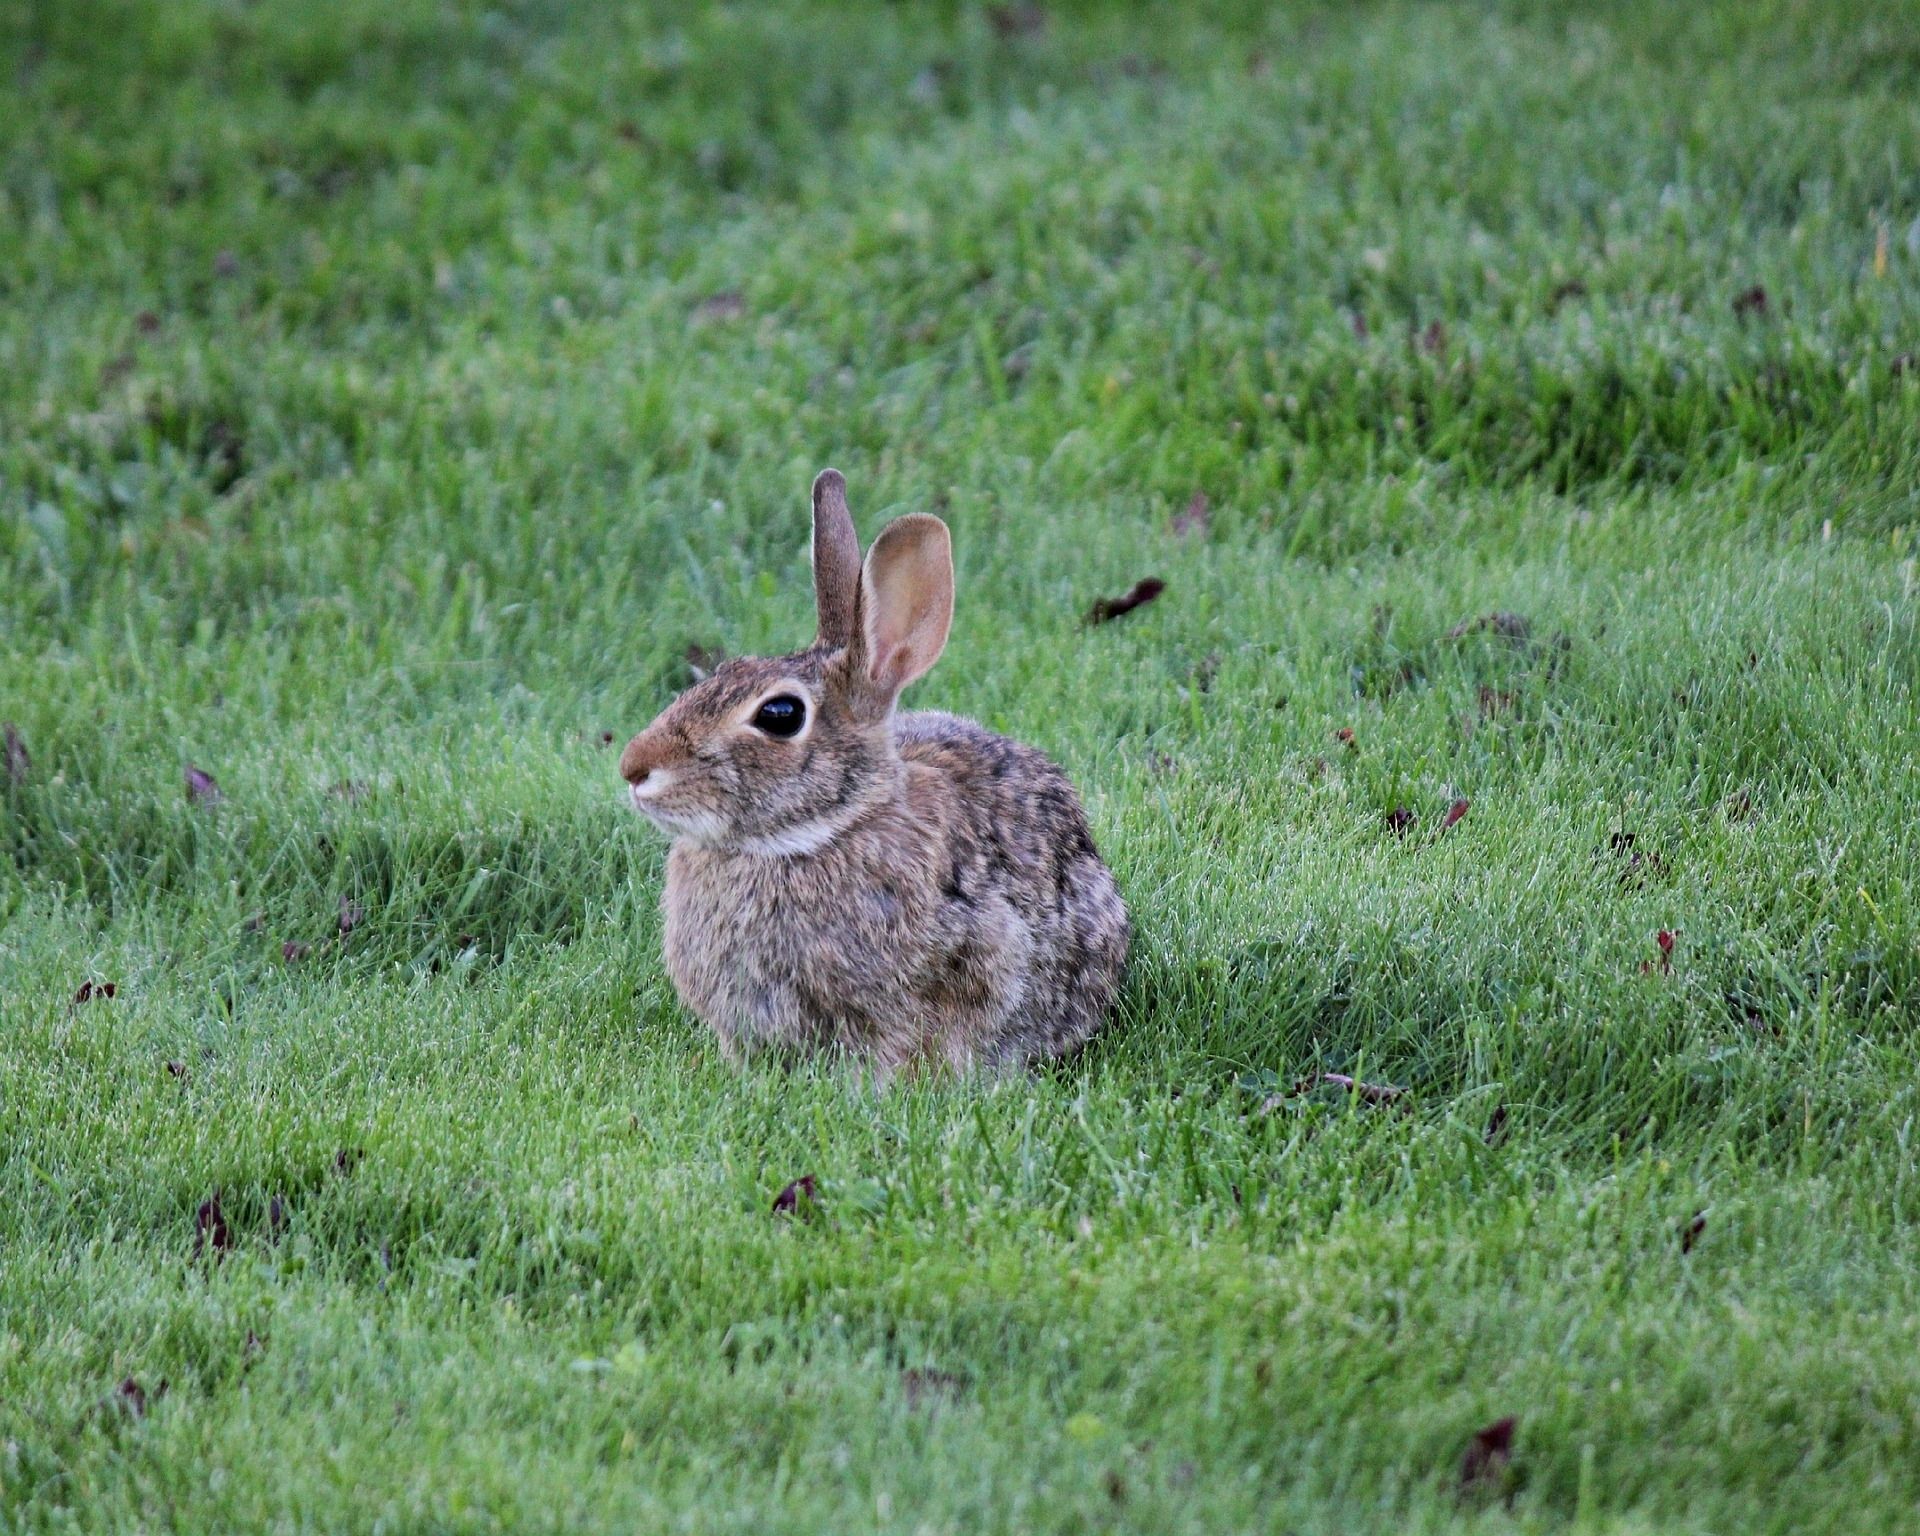 Rabbits: How To Identify And Get Rid Of Rabbits | Garden Pest with Garden Flowers Safe For Rabbits